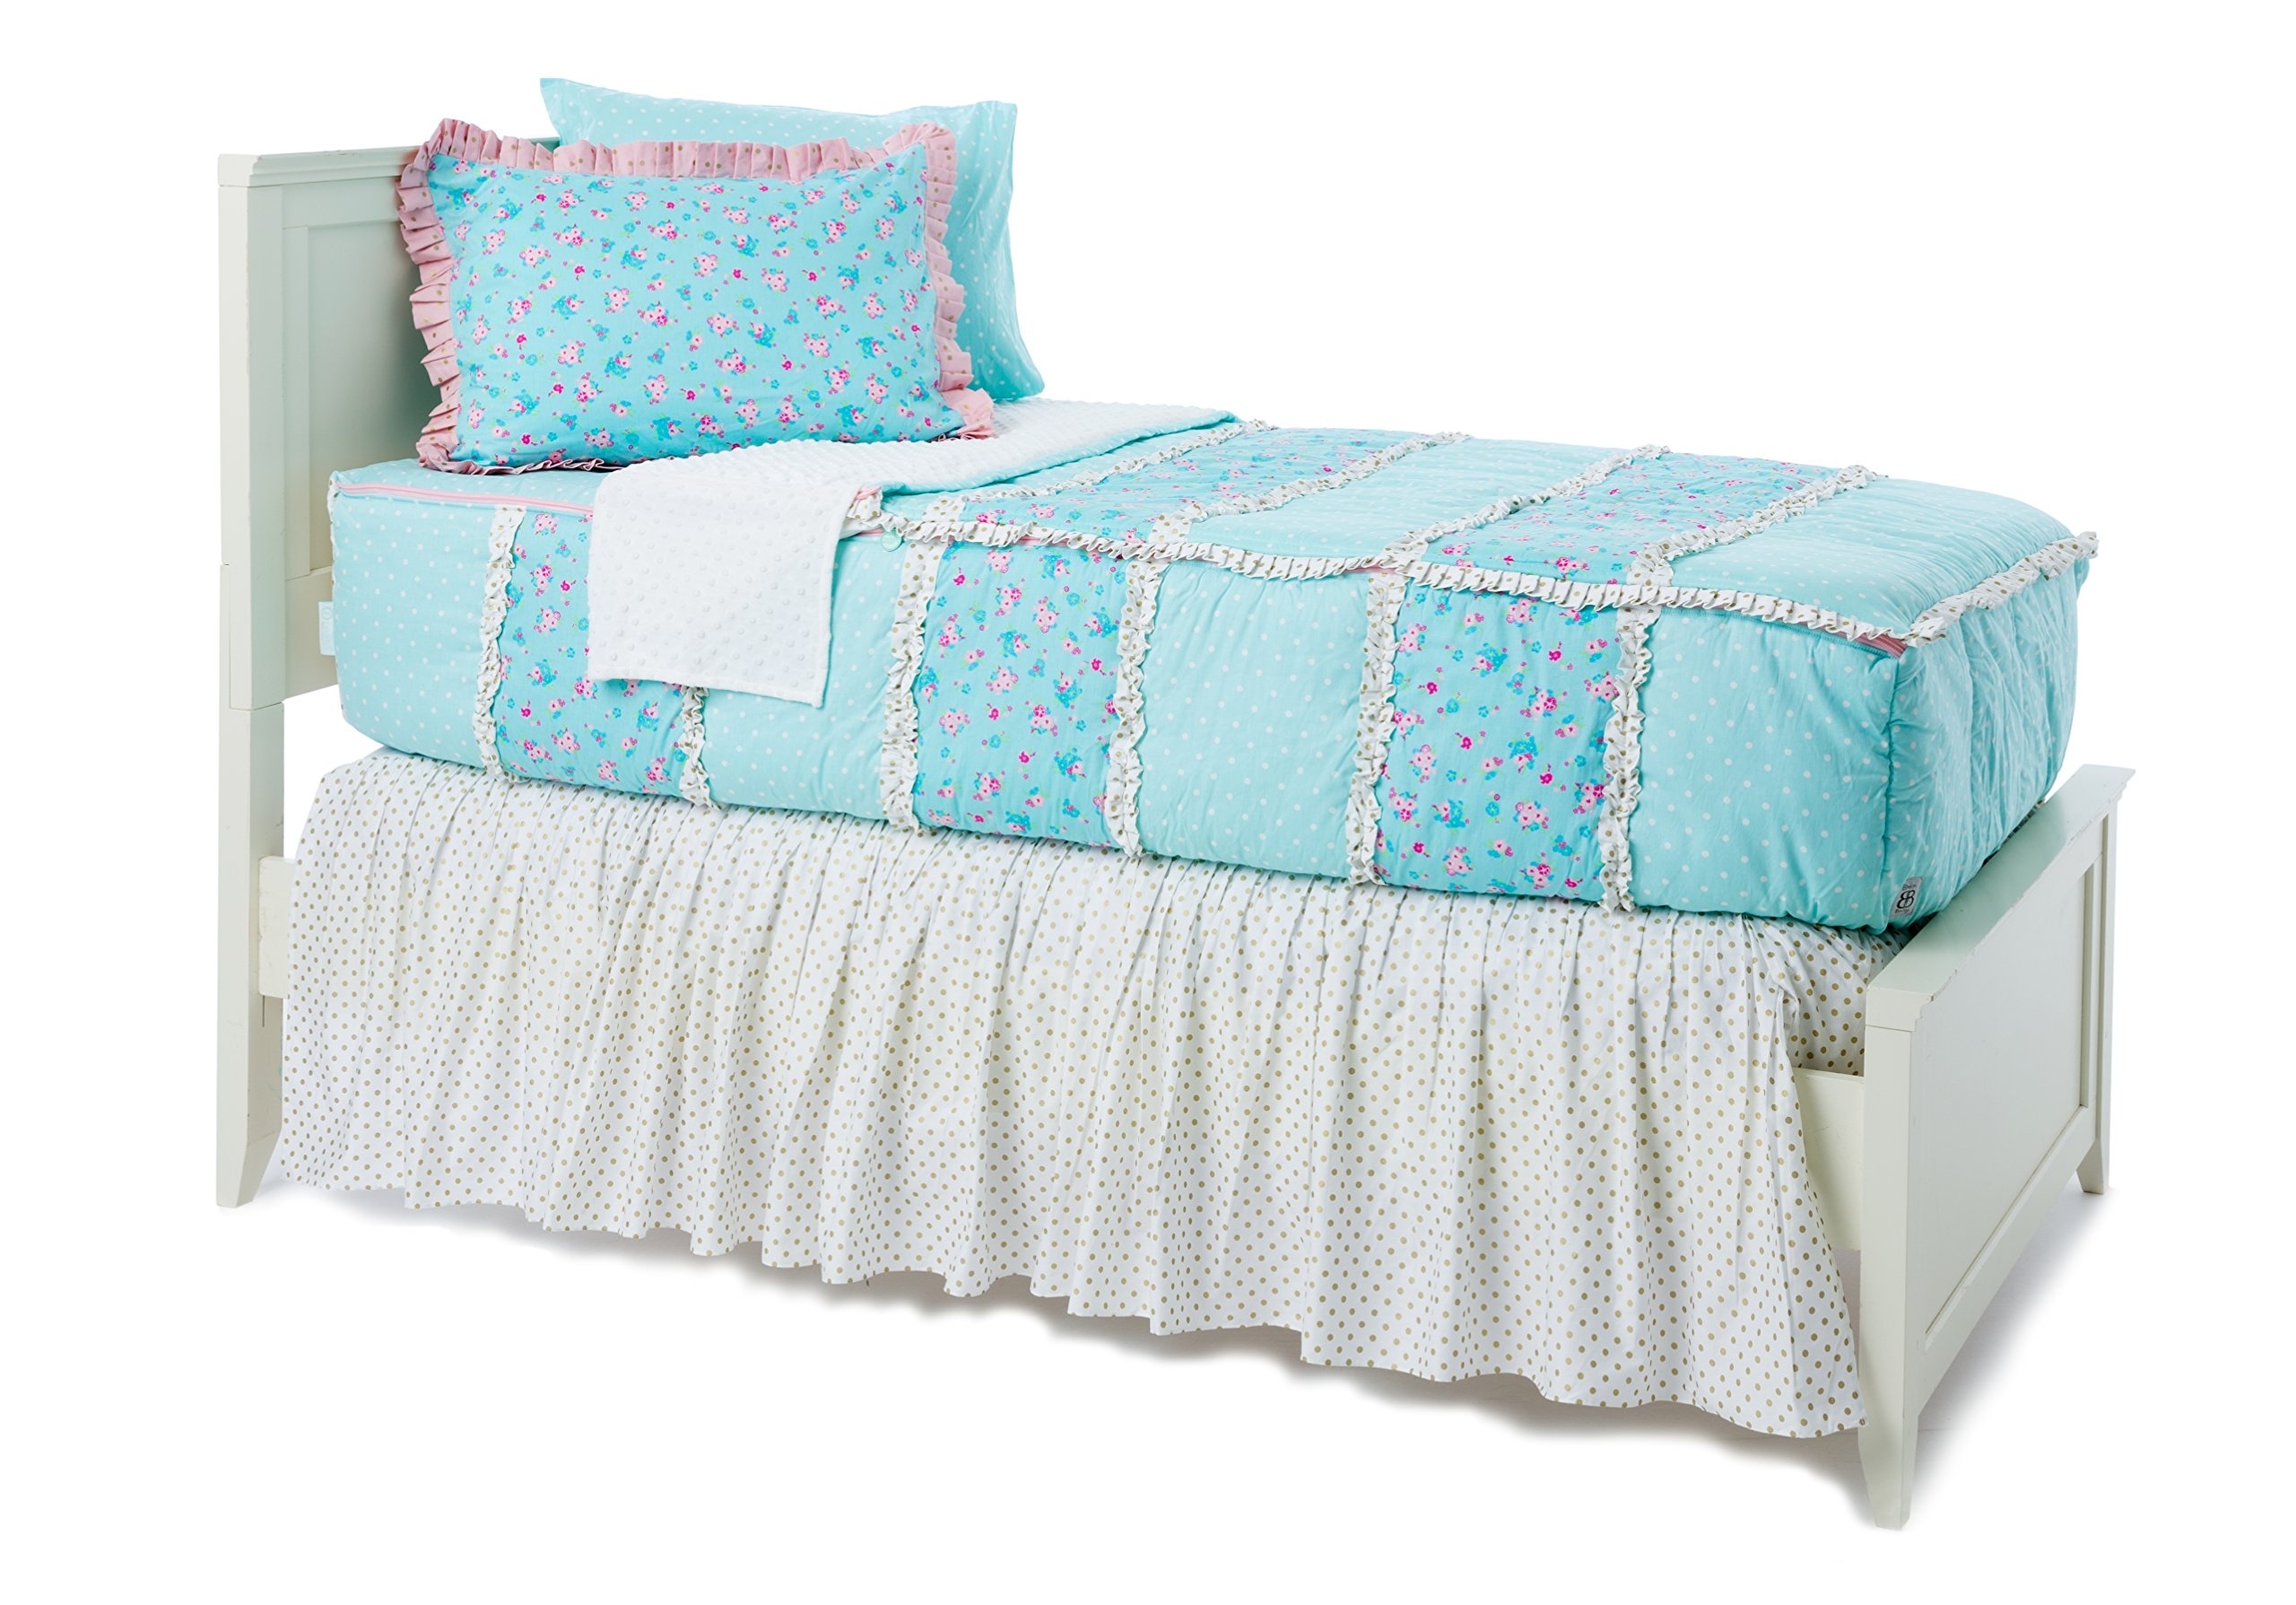 Beddy's Always Enchanting Twin Bed Set